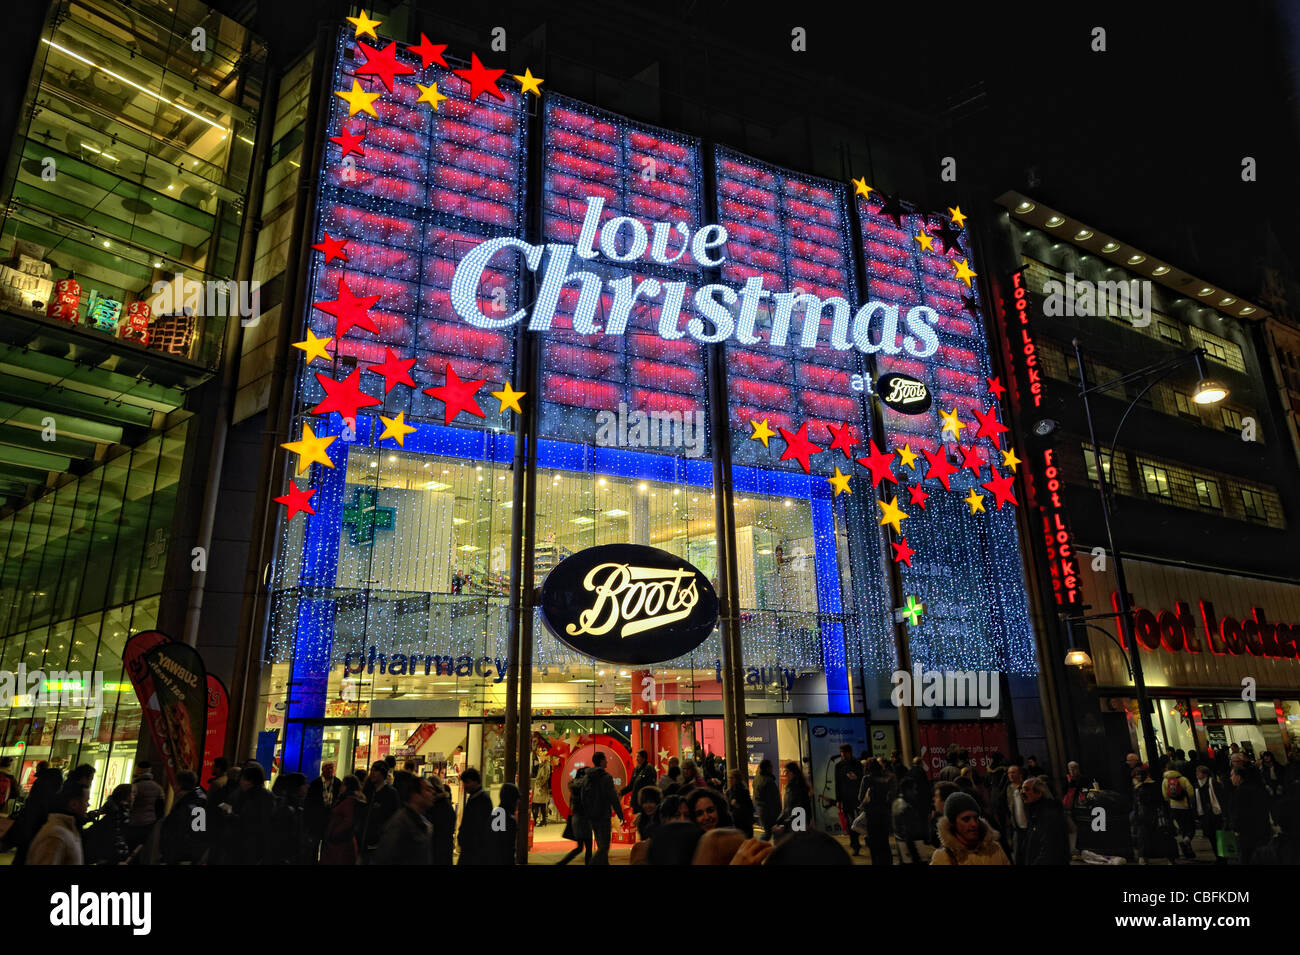 Boots the Chemist store, Oxford Street, London, England, UK, in Christmas lights - Stock Image